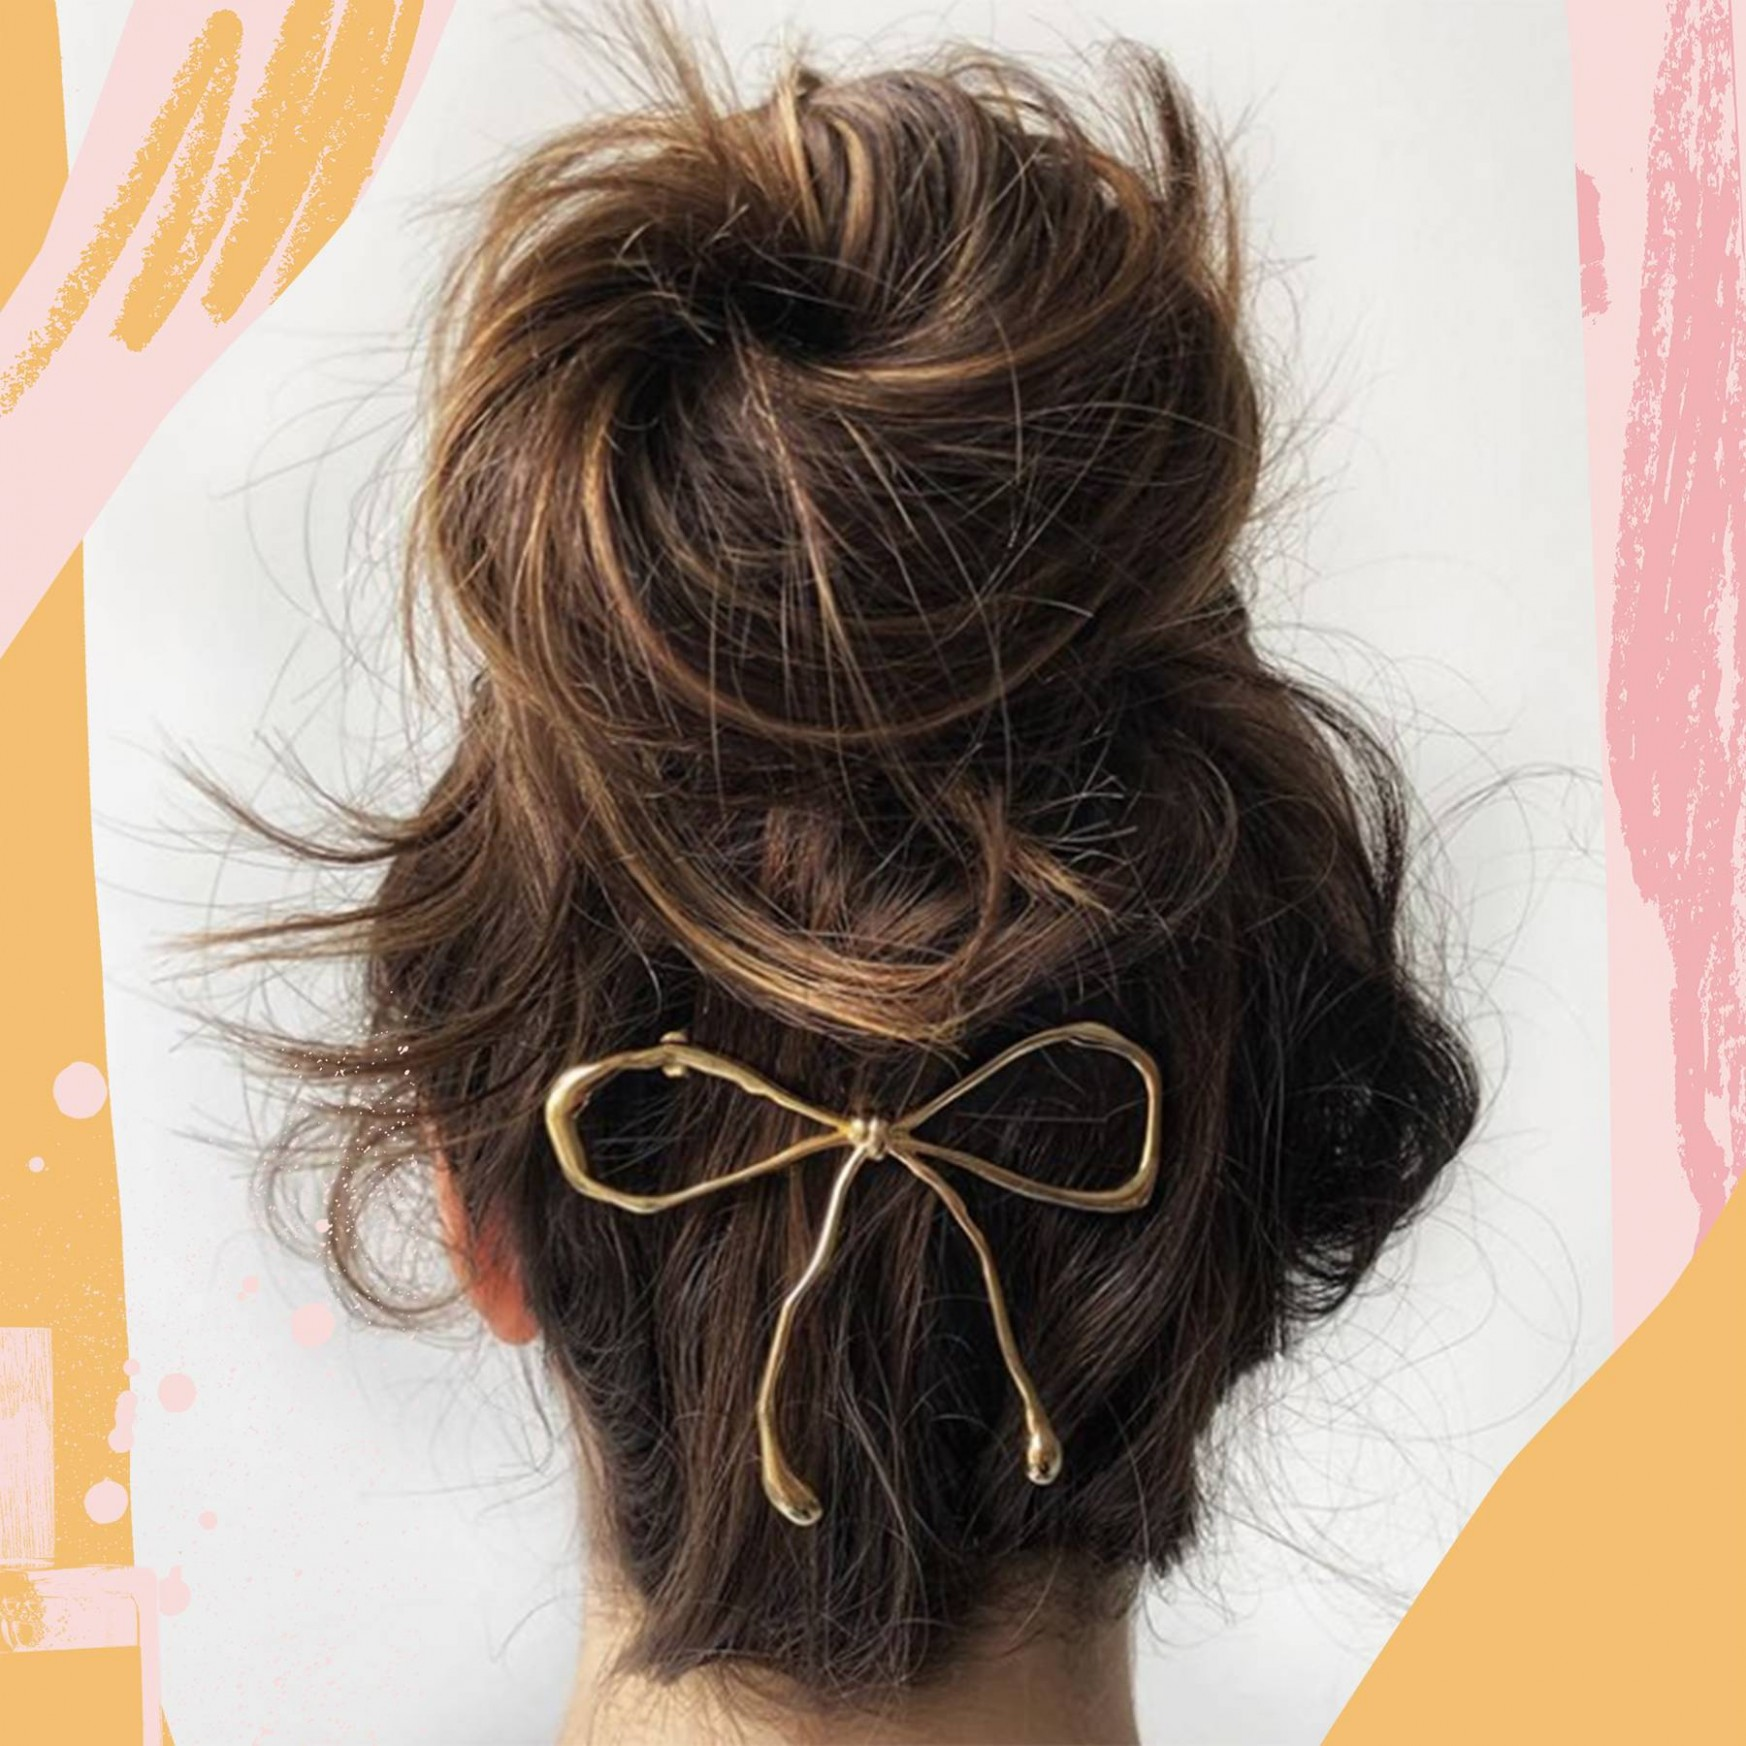 Hairstyles For Long Hair: Long Hair Trends, Ideas & Tips 12